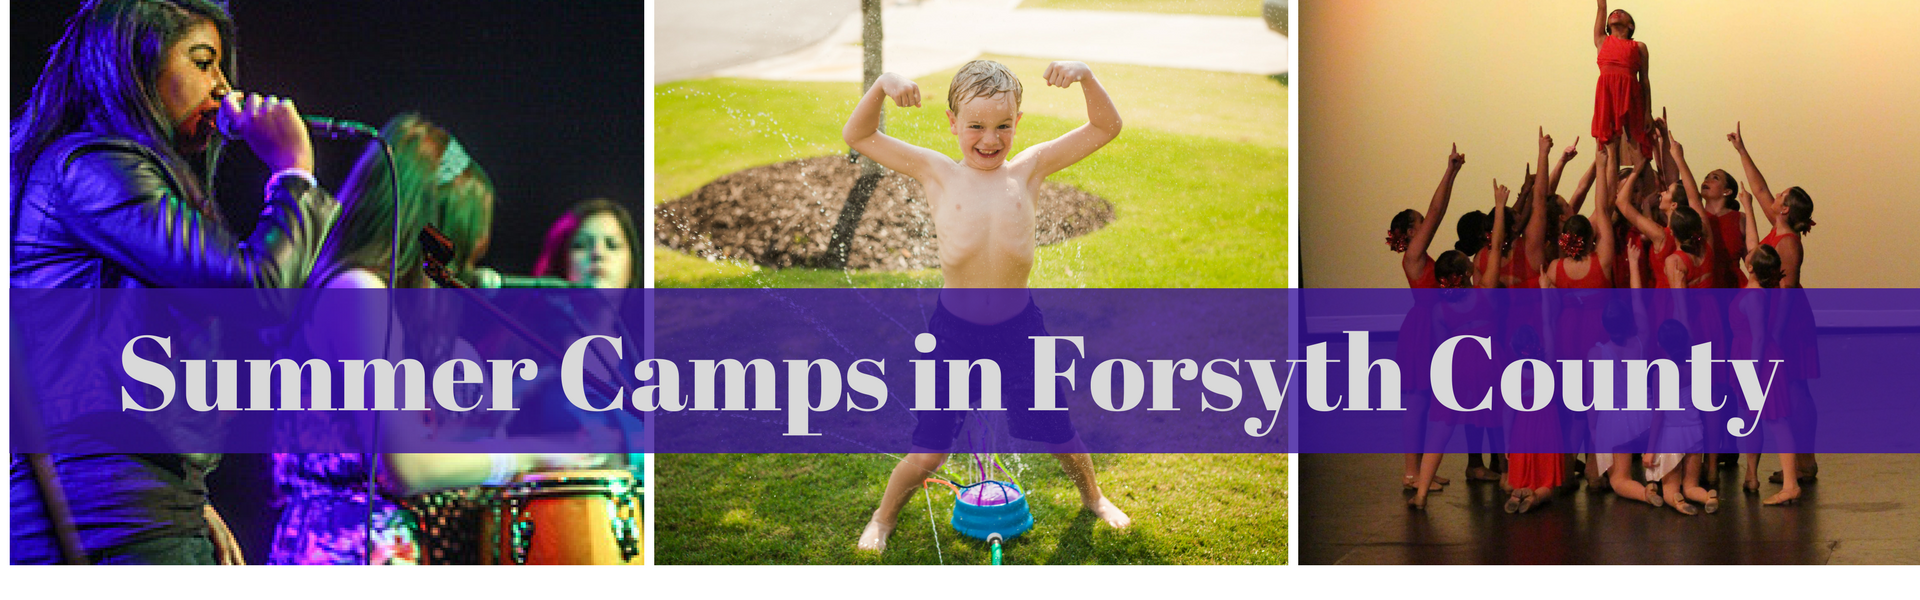 Summer Camps in Forsyth County